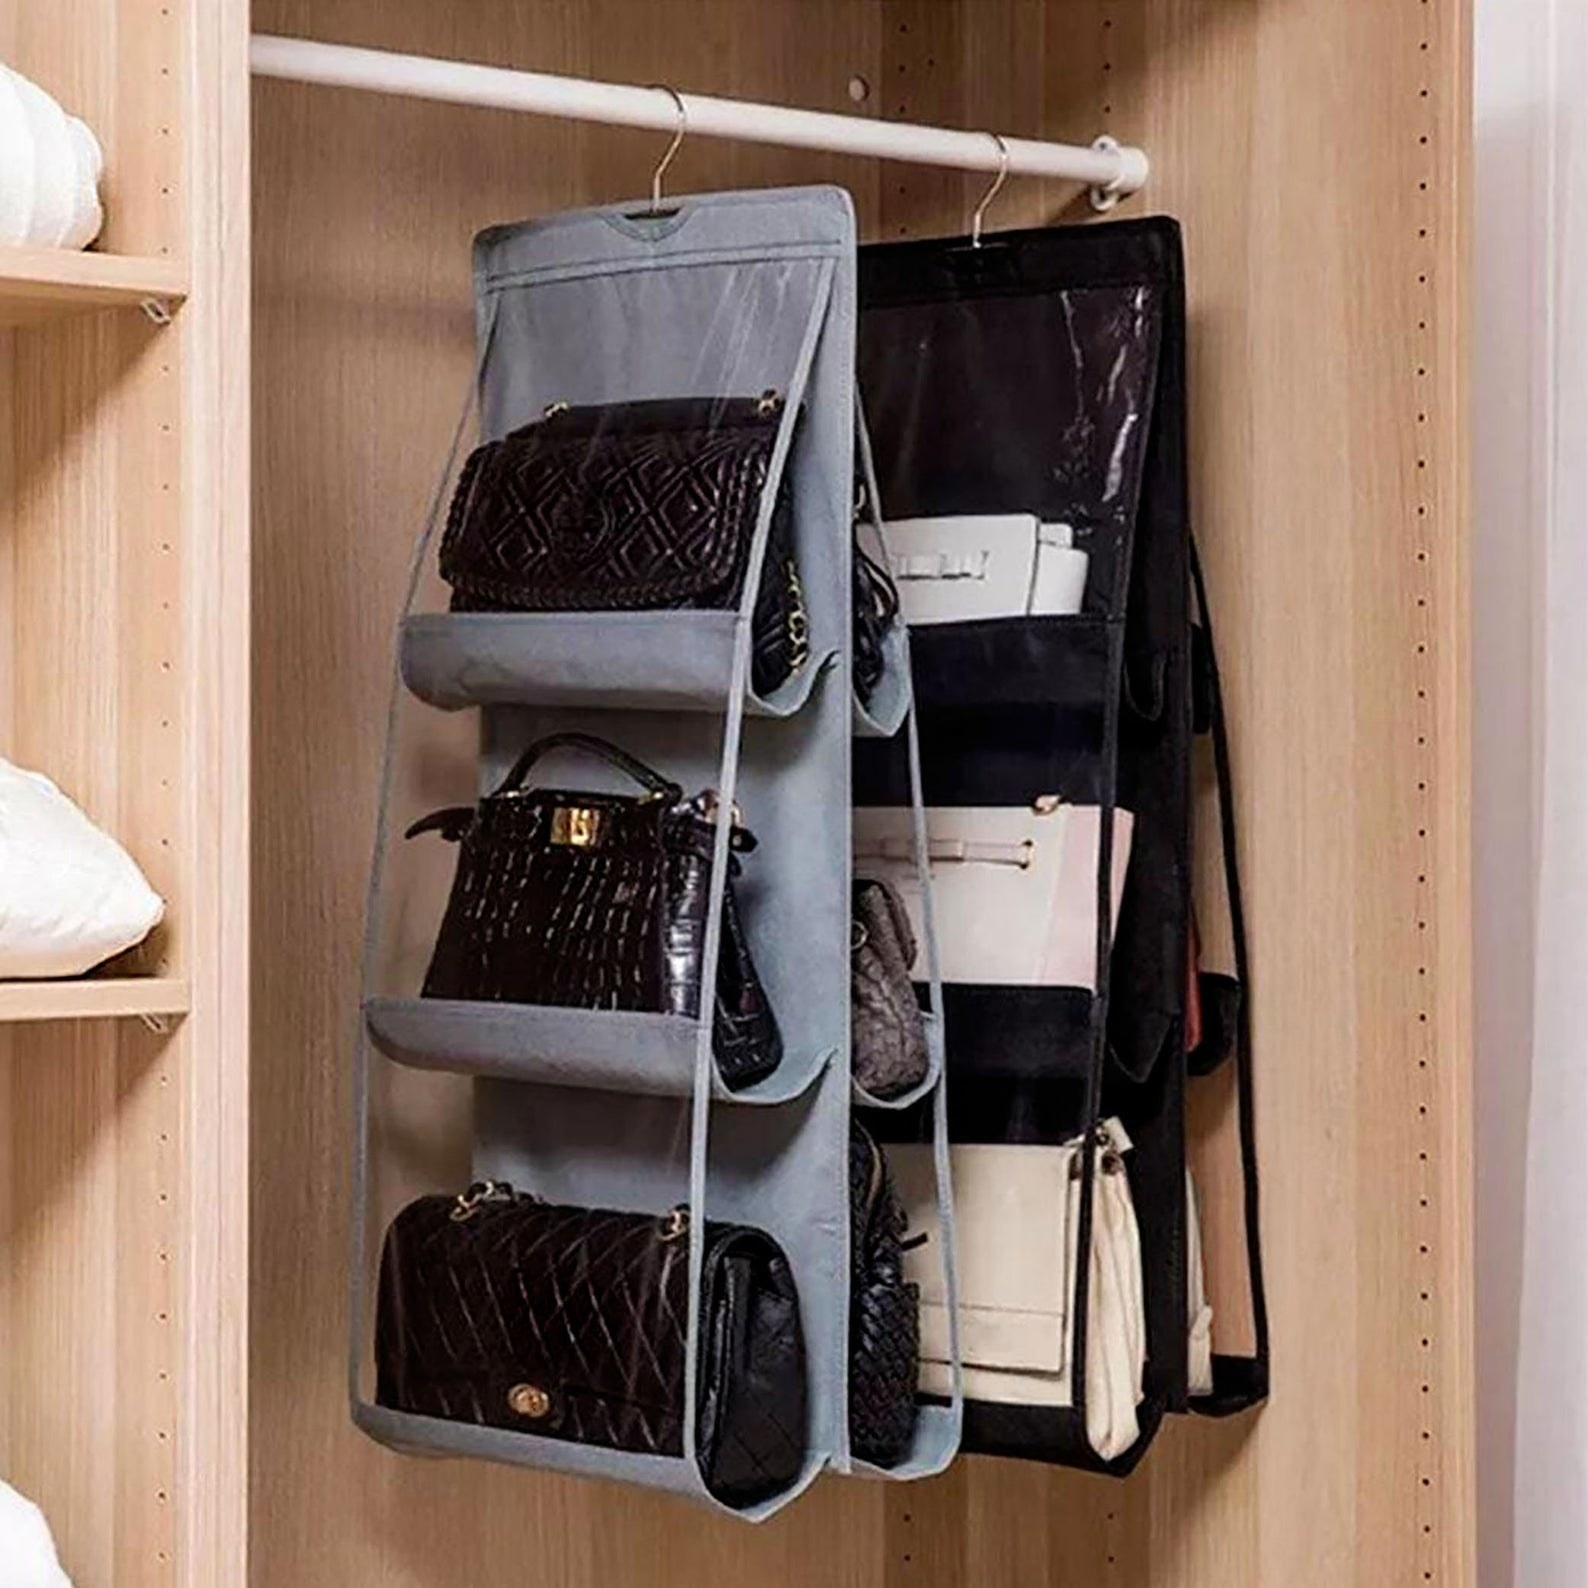 a hanging organizer for six hand bags in a closet